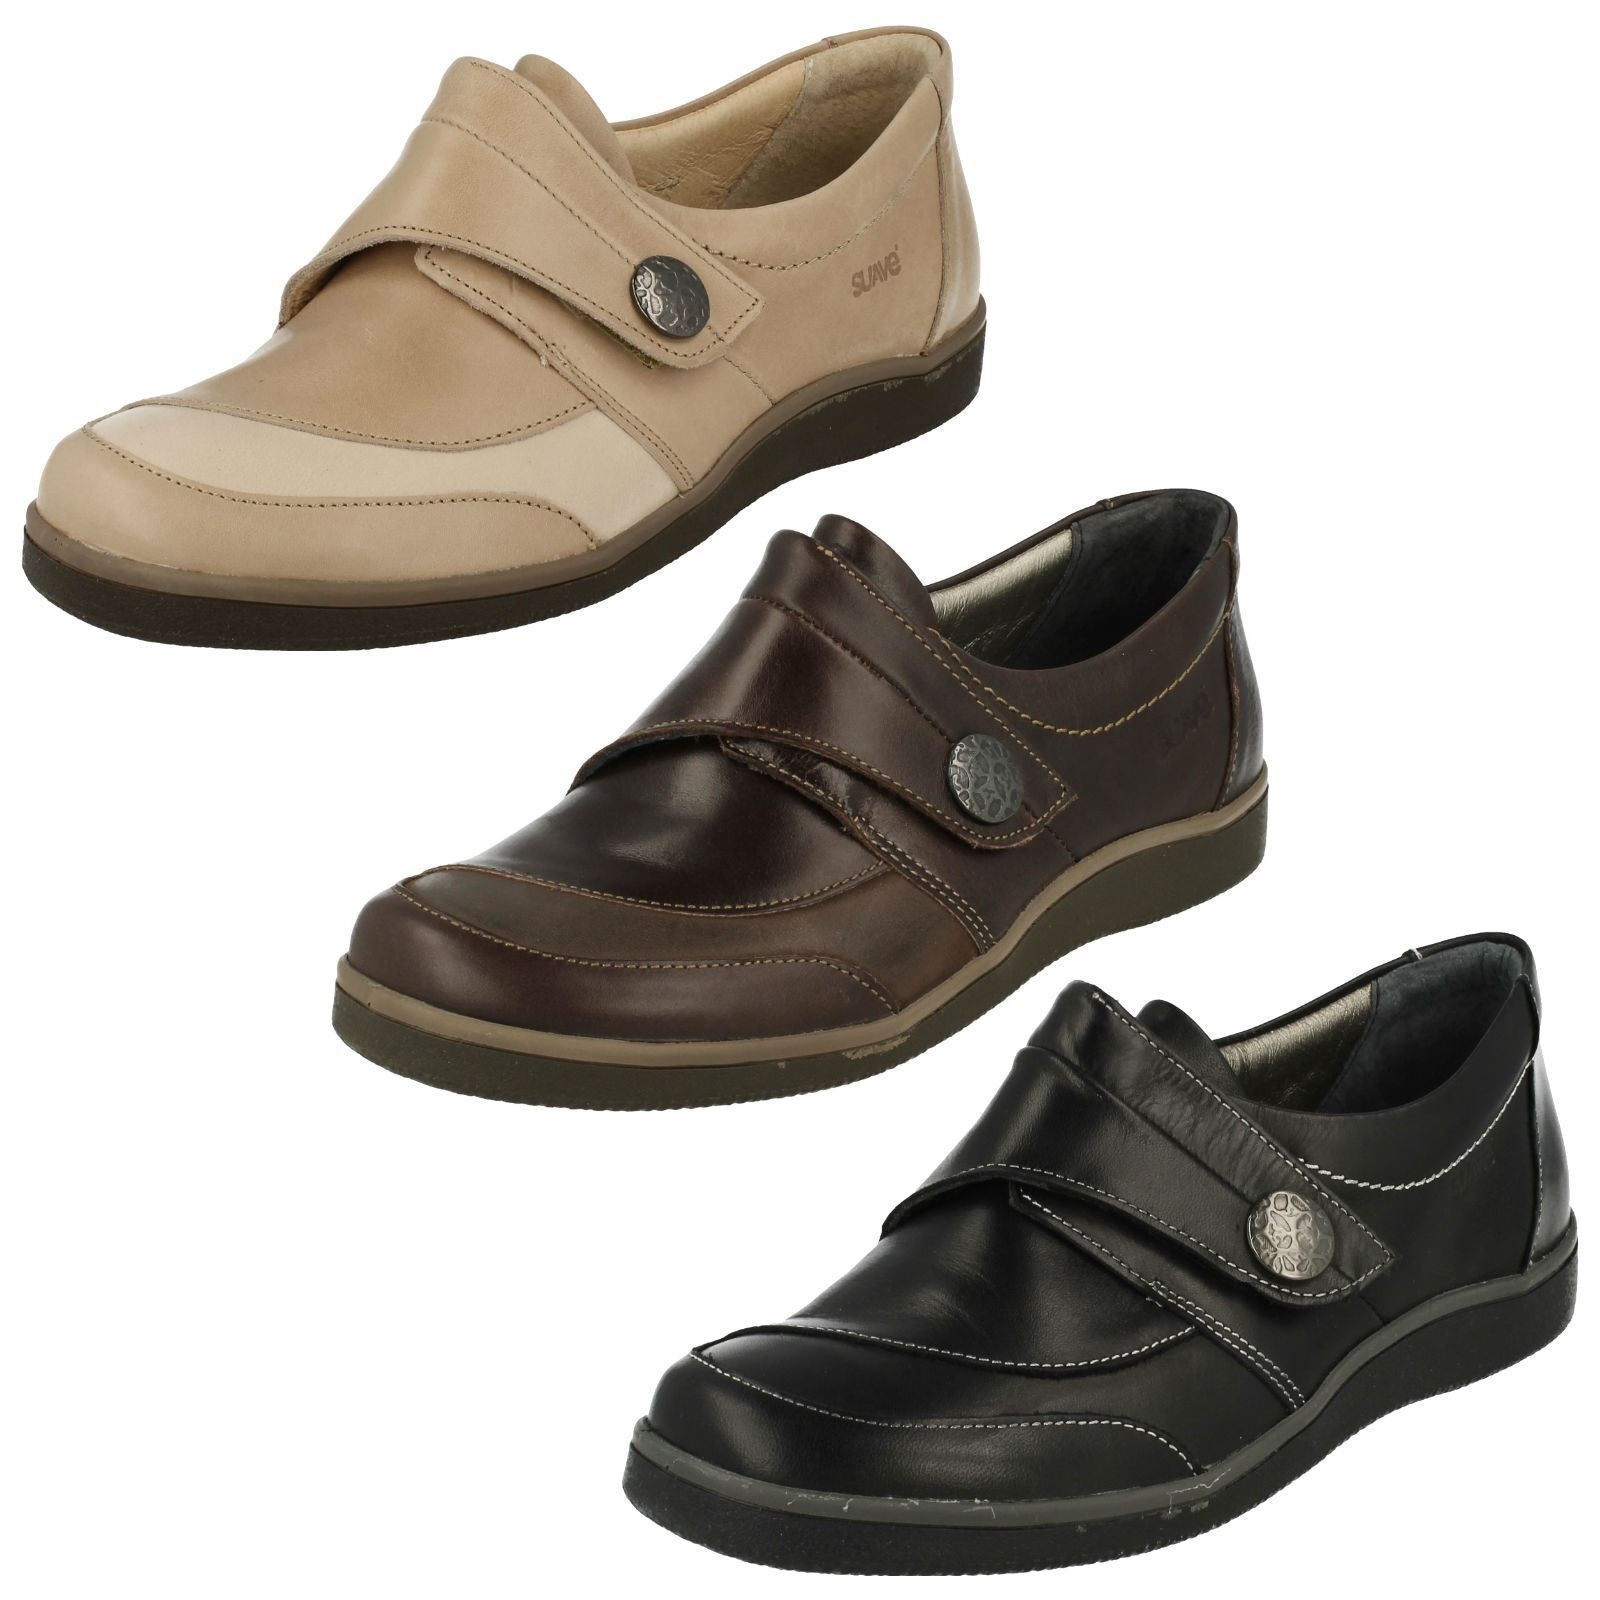 Clothing, Shoes & Accessories Women's Shoes Cosyfeet Helen Burgundy Ladies Shoes Uk5